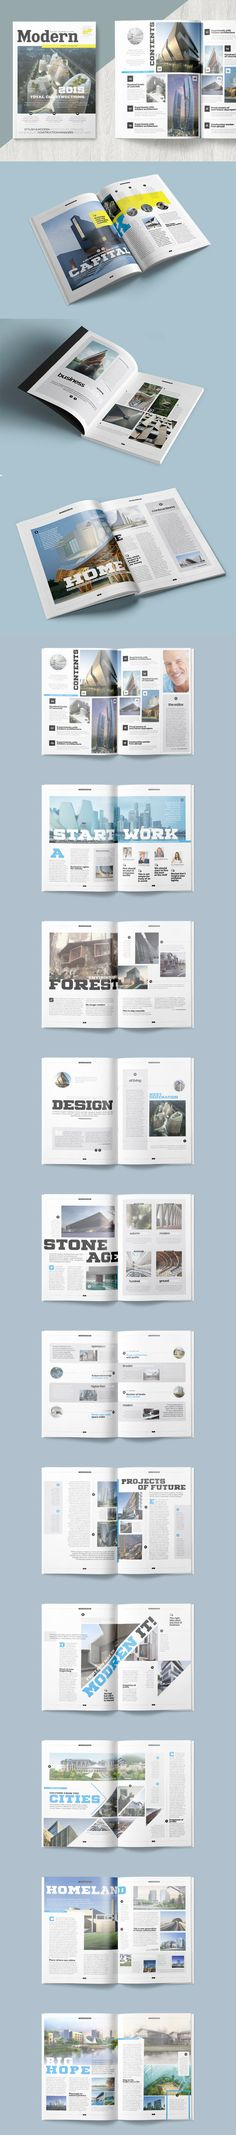 30 Pages Magazine Template InDesign INDD